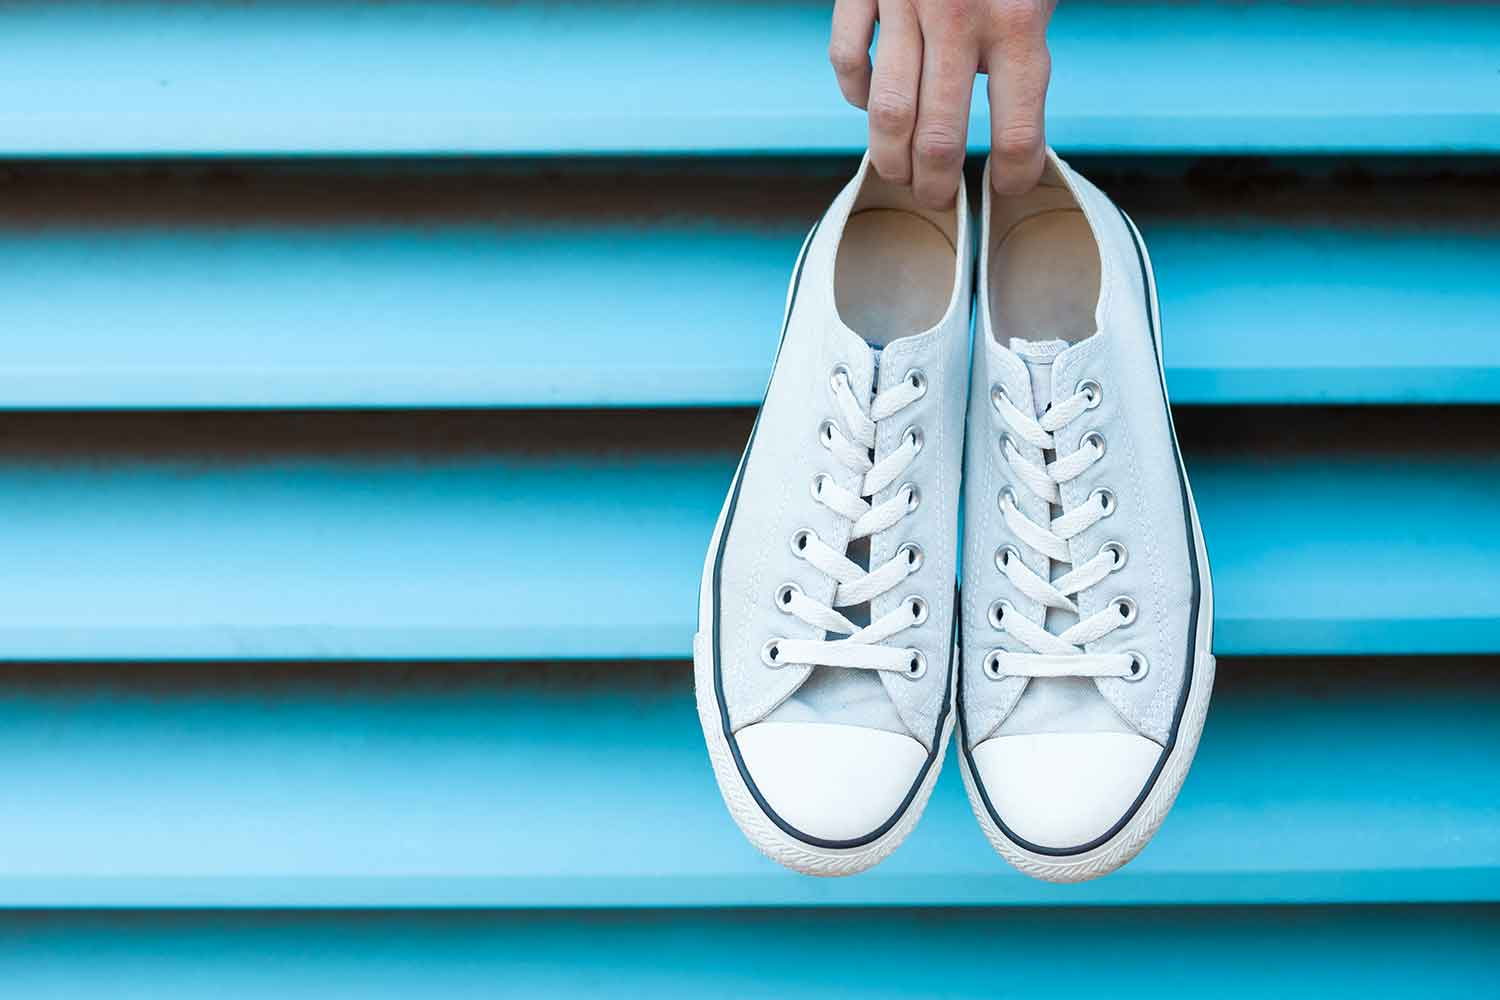 6 hacks to make your white shoes look new again | Better